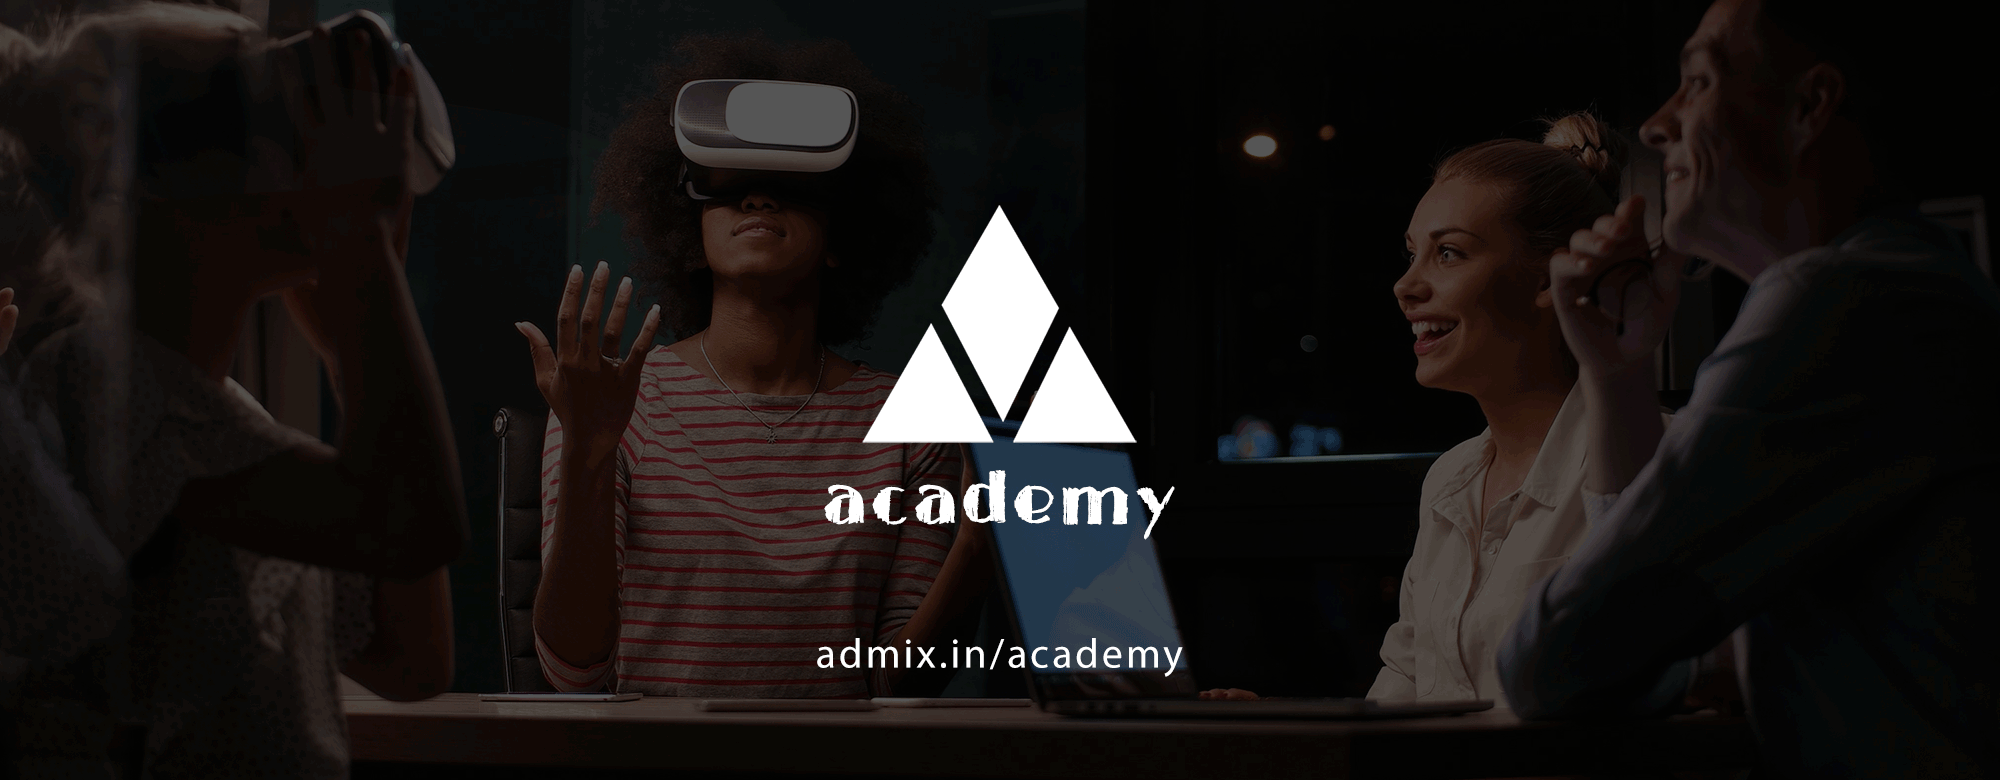 Announcing the Admix Academy